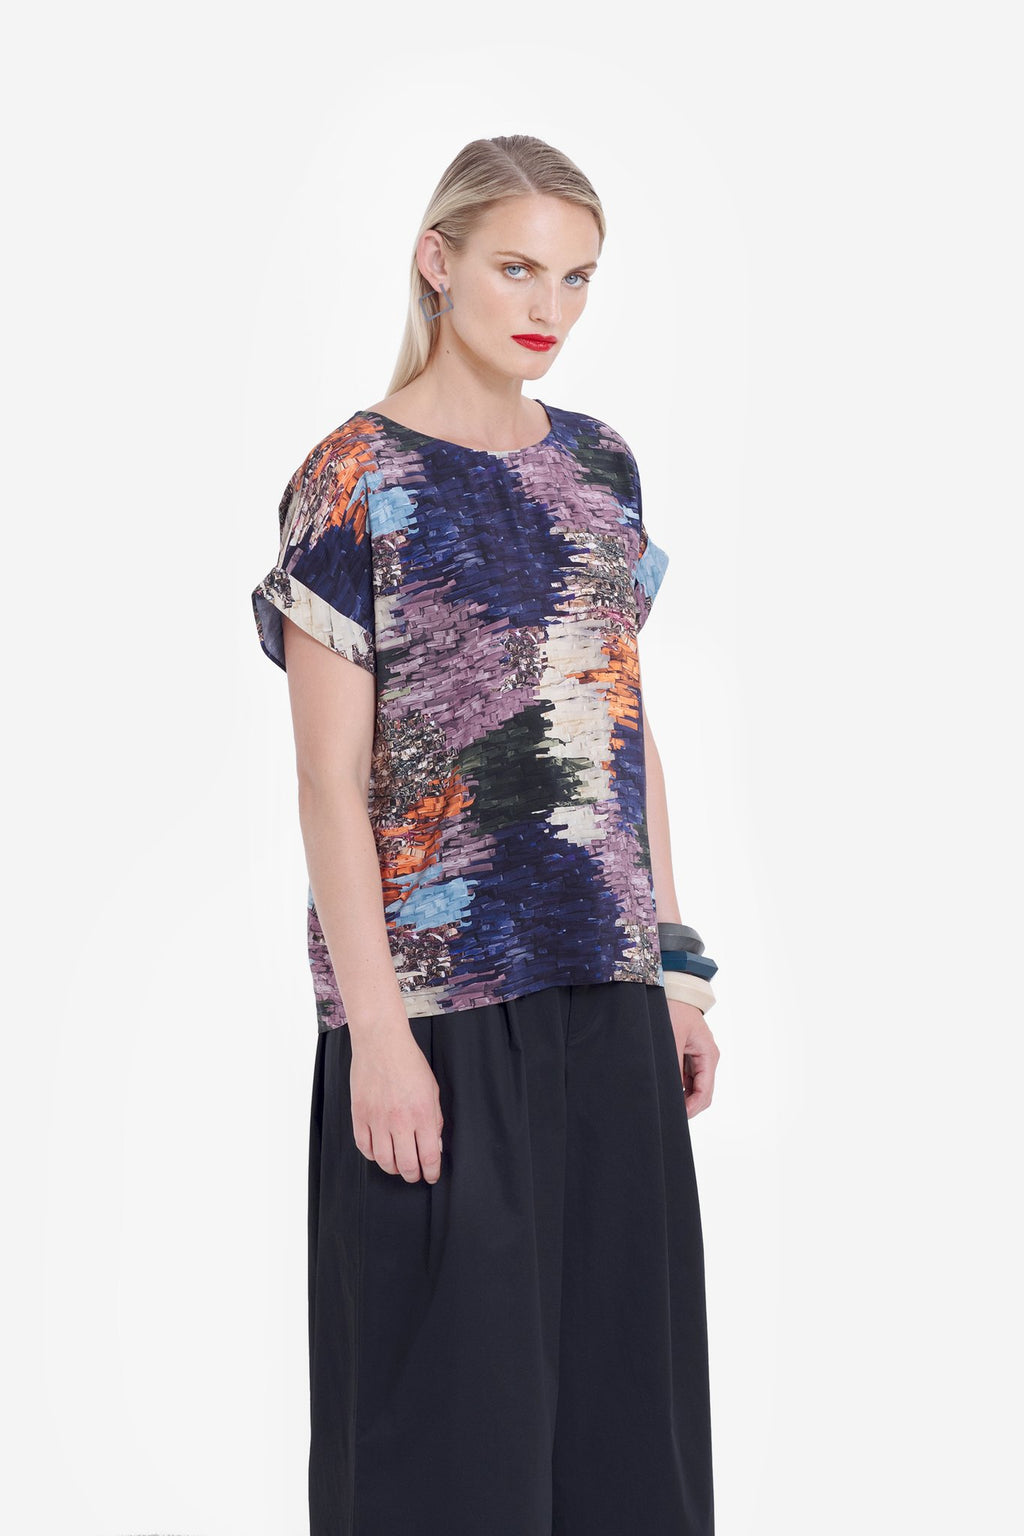 ELK The Label - Arden Shell Top online at PAYA boutique